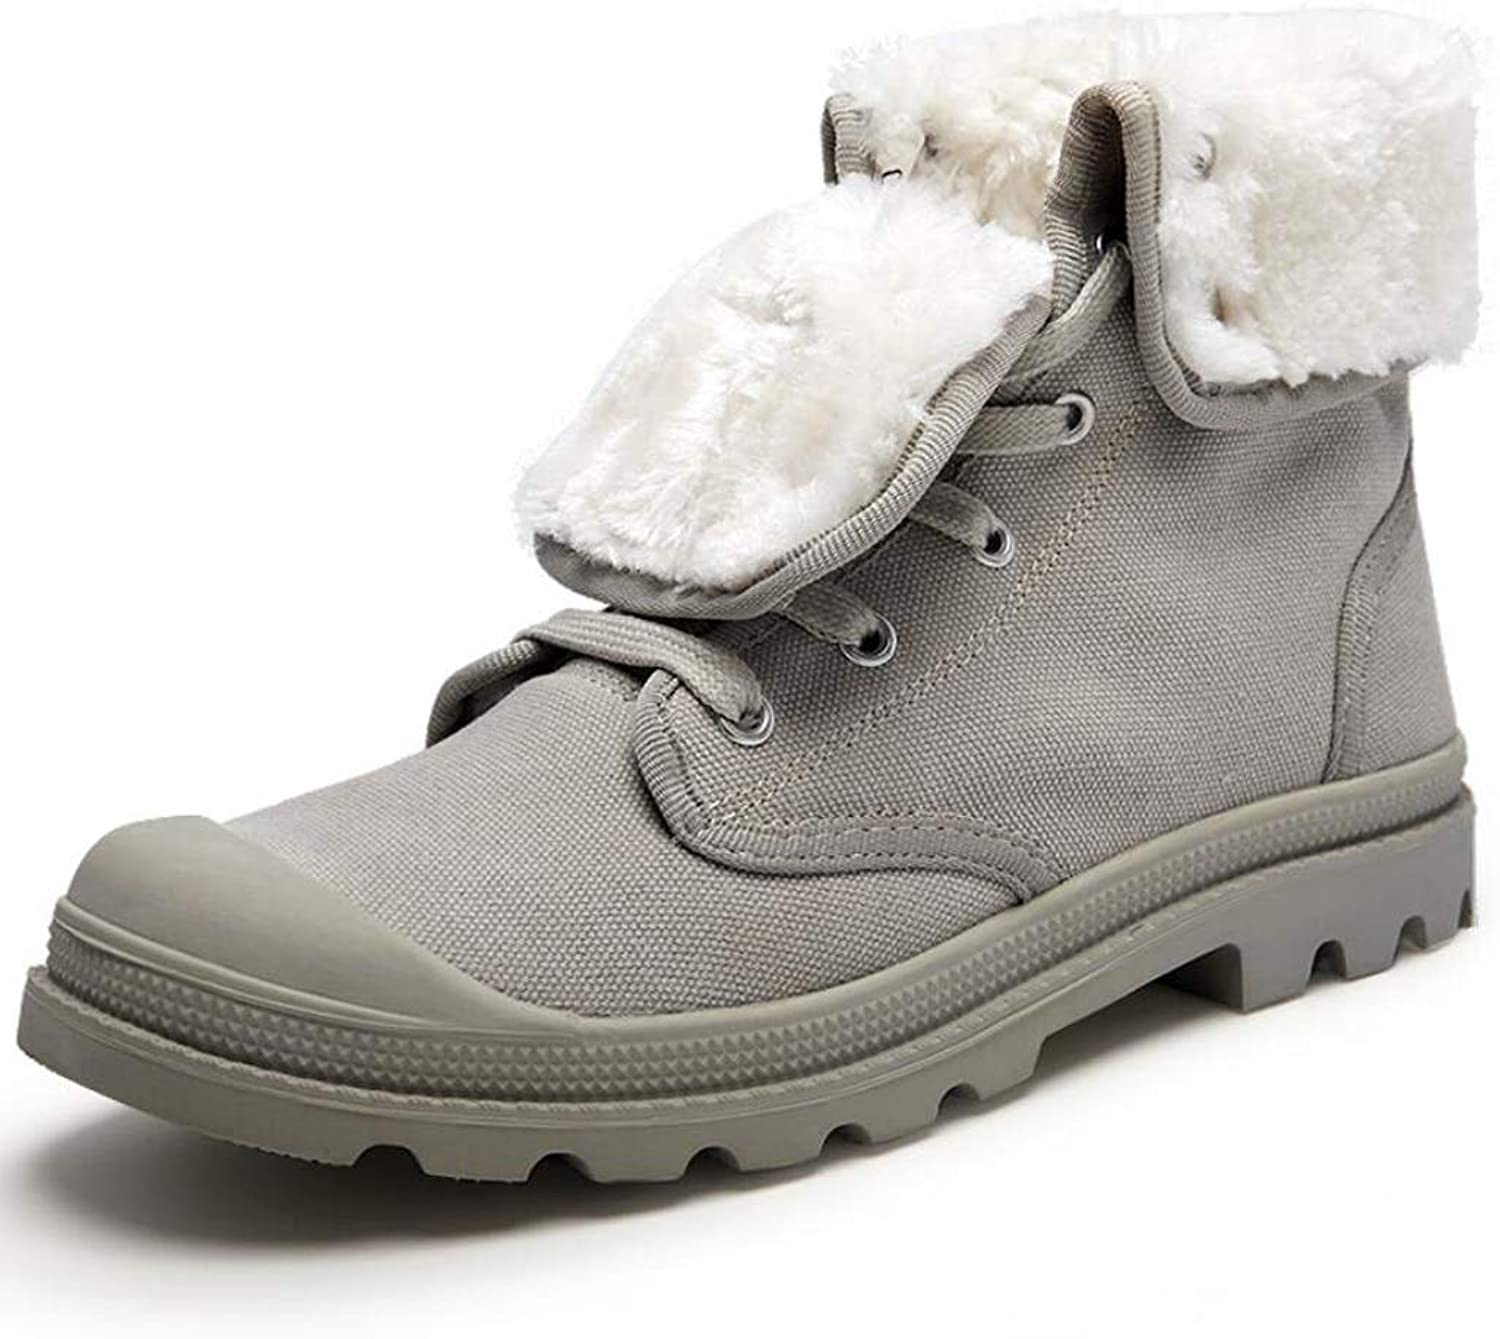 CJB-SHOE Women'S Snow Boots Waterproof Textile Upper Durable Breathable Isotherm Lining & Rubber Outsole Designed for Fit